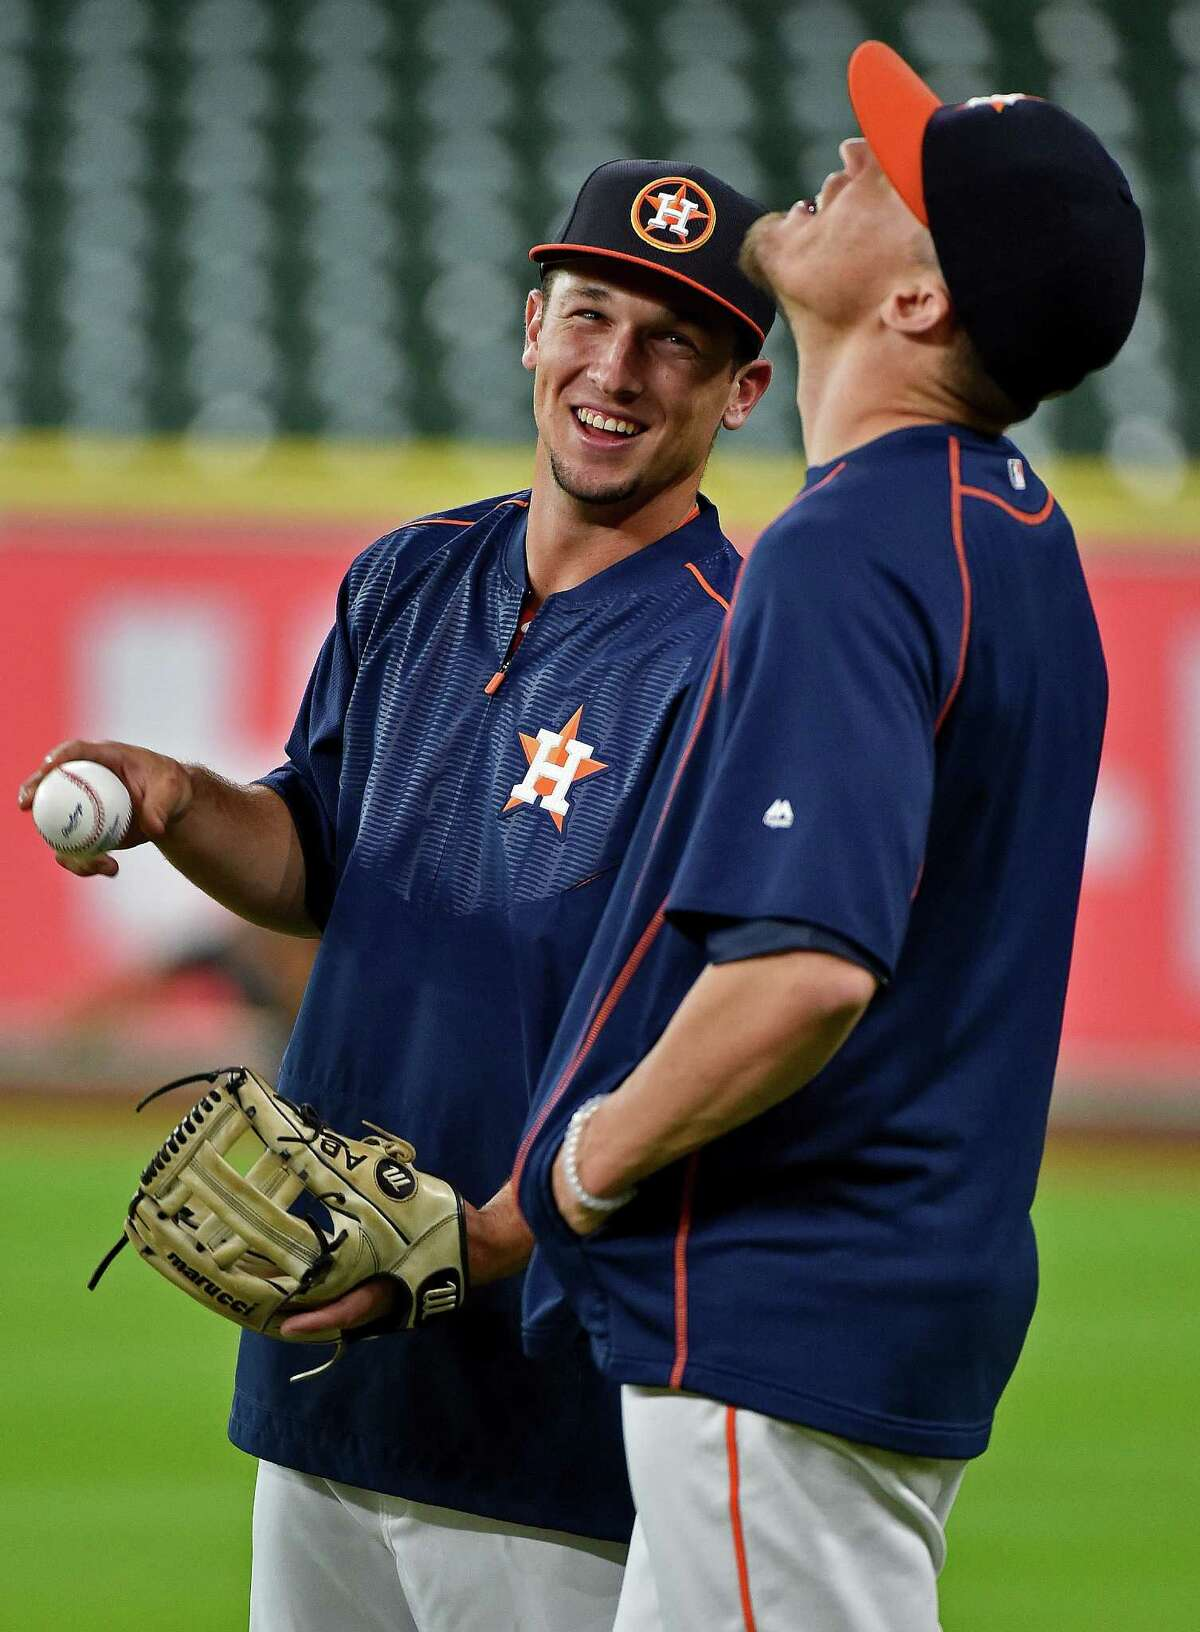 Houston Astros third baseman Alex Bregman, left, shares a laugh with relief pitcher Ken Giles before a baseball game, Monday, July 25, 2016, in Houston. (AP Photo/Eric Christian Smith)